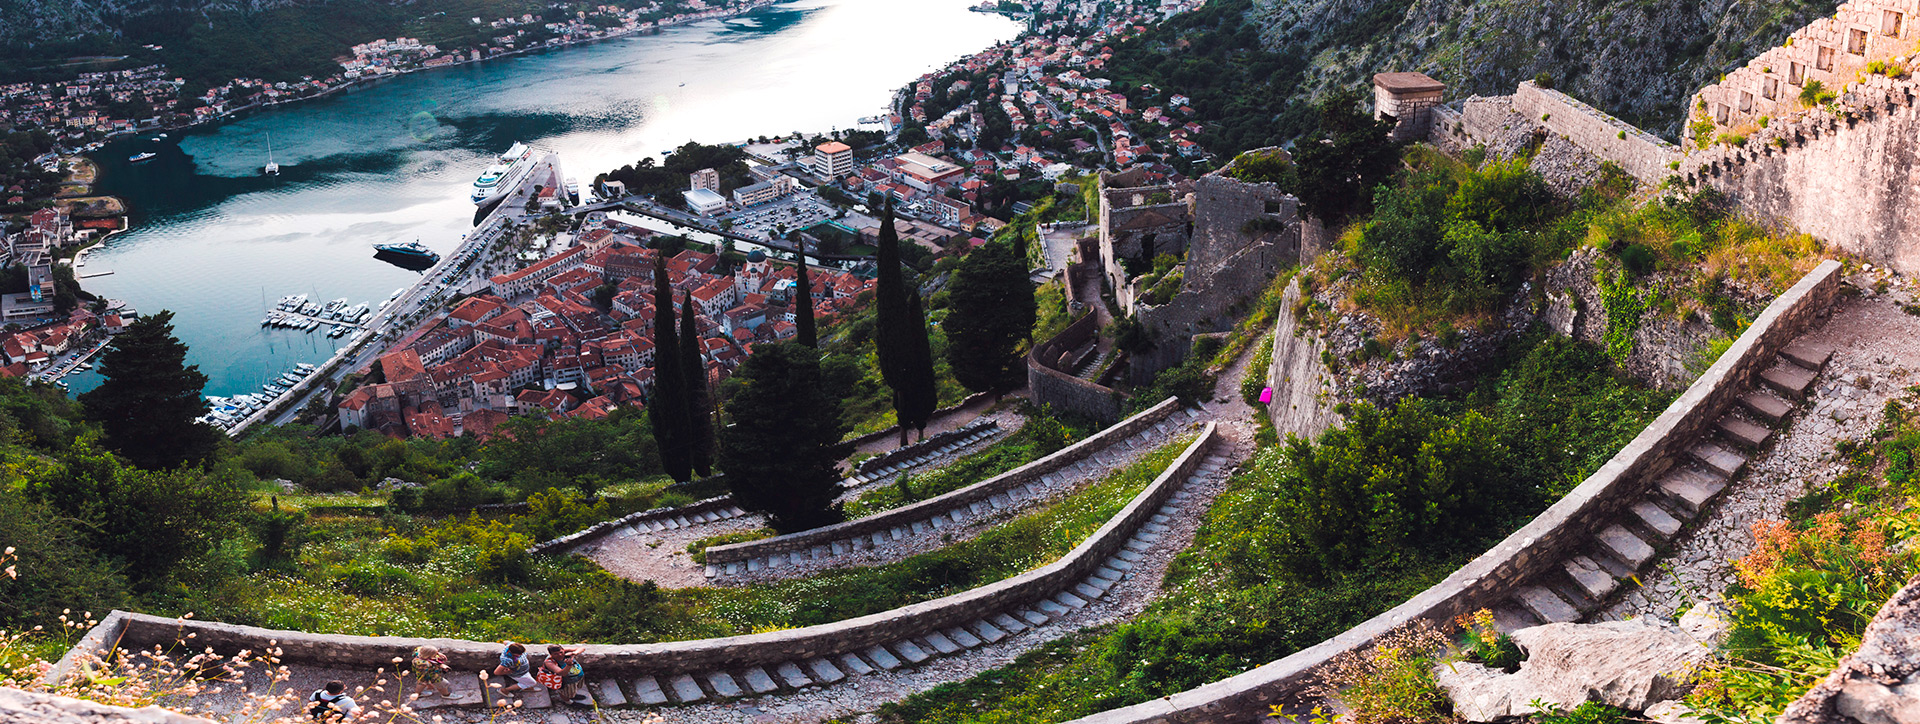 View of the Old town and the Bay of Kotor, Montenegro